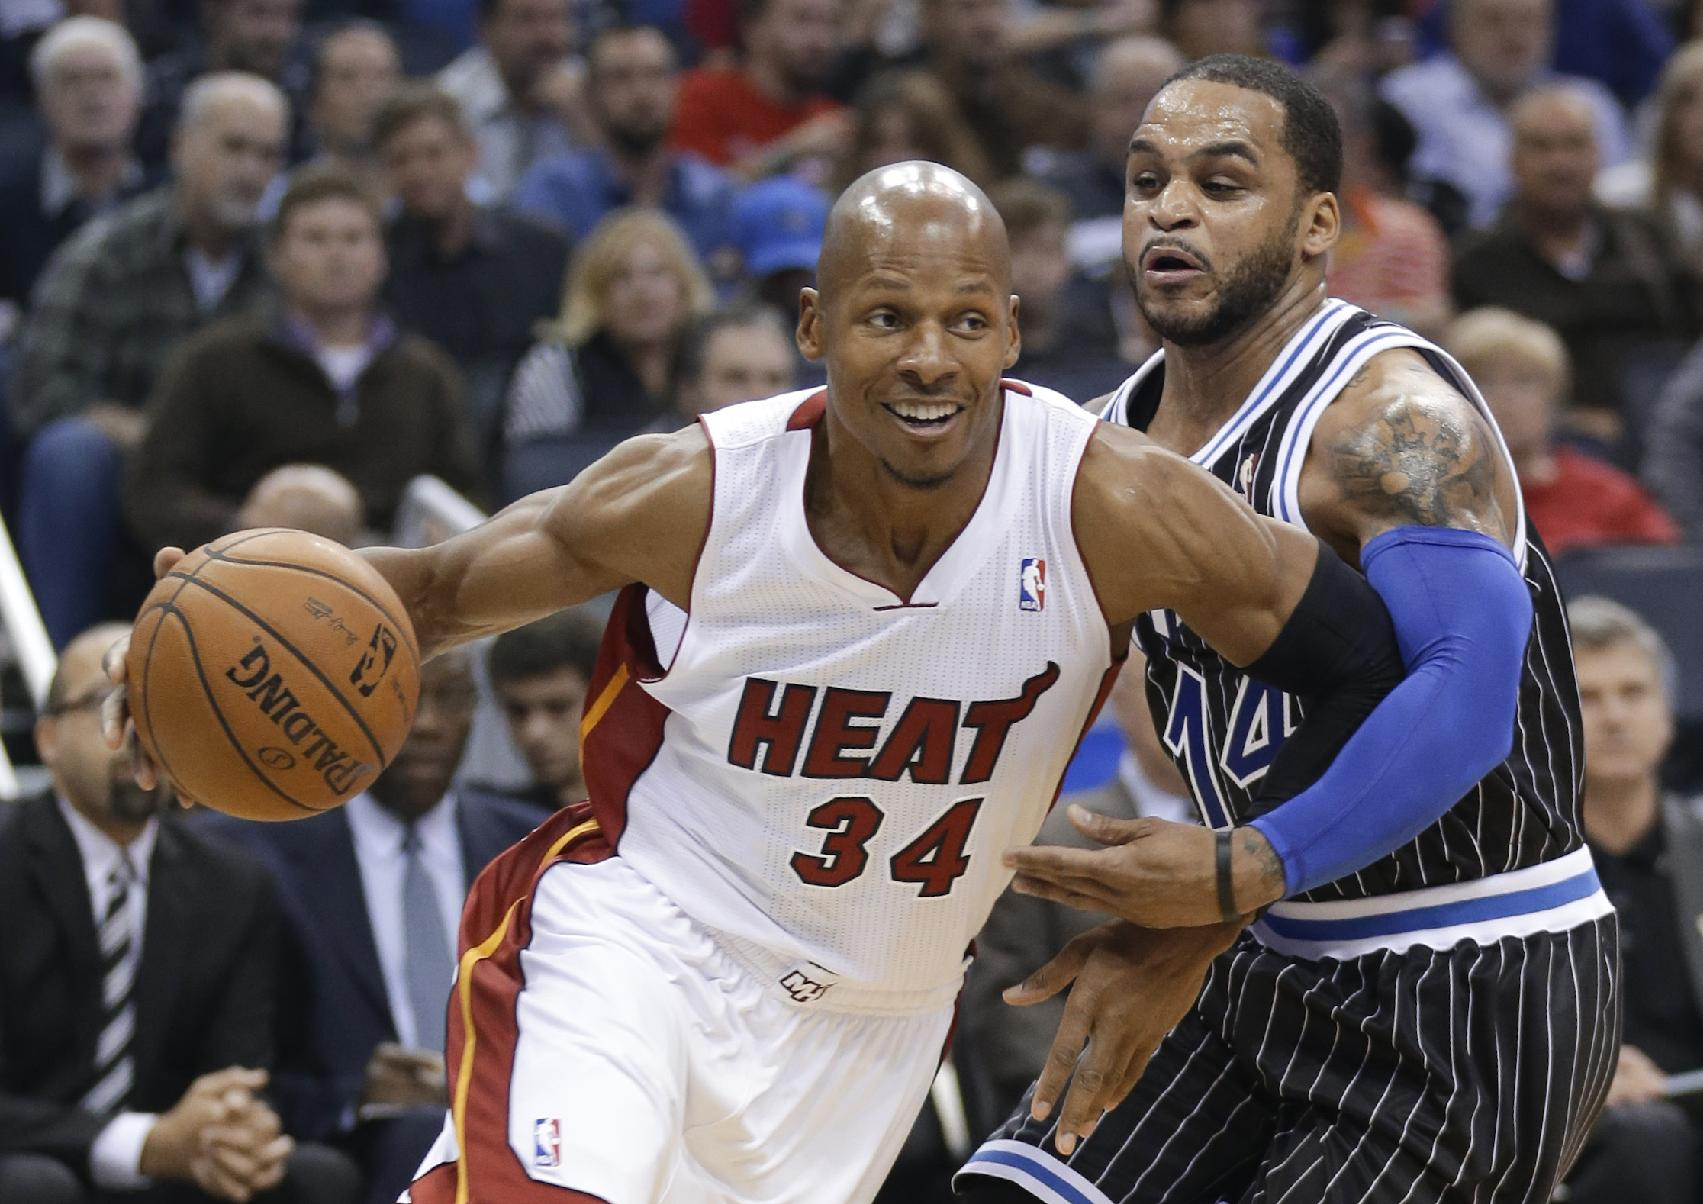 In this Jan. 4, 2014, file photo, Miami Heat's Ray Allen (34) drives around Orlando Magic's Jameer Nelson during an NBA basketball game in Orlando, Fla. Allen collaborated with the NBA to design a shooting shirt that teams will wear for certain games in February, part of what he hopes brings additional spotlight to Black History Month. The shirt features the likenesses of Frederick Douglass, Harriet Tubman, Bill Russell and Dr. Martin Luther King Jr., the civil rights activist whose life is celebrated on Monday